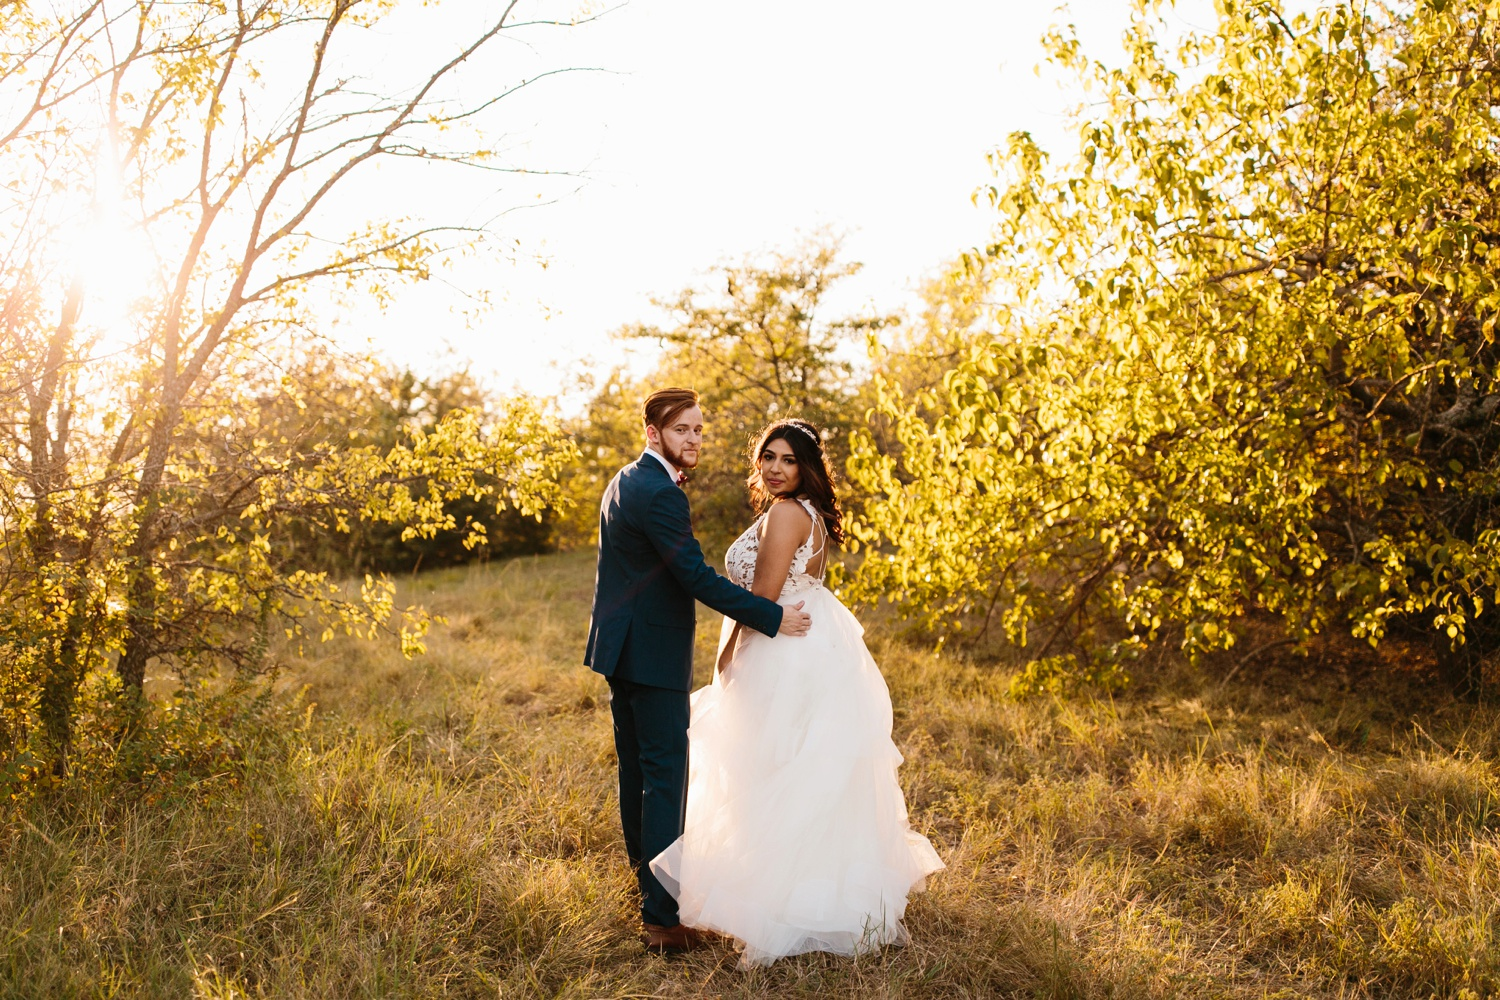 Grant + Lysette | a vibrant, deep burgundy and navy, and mixed metals wedding at Hidden Pines Chapel by North Texas Wedding Photographer Rachel Meagan Photography 220